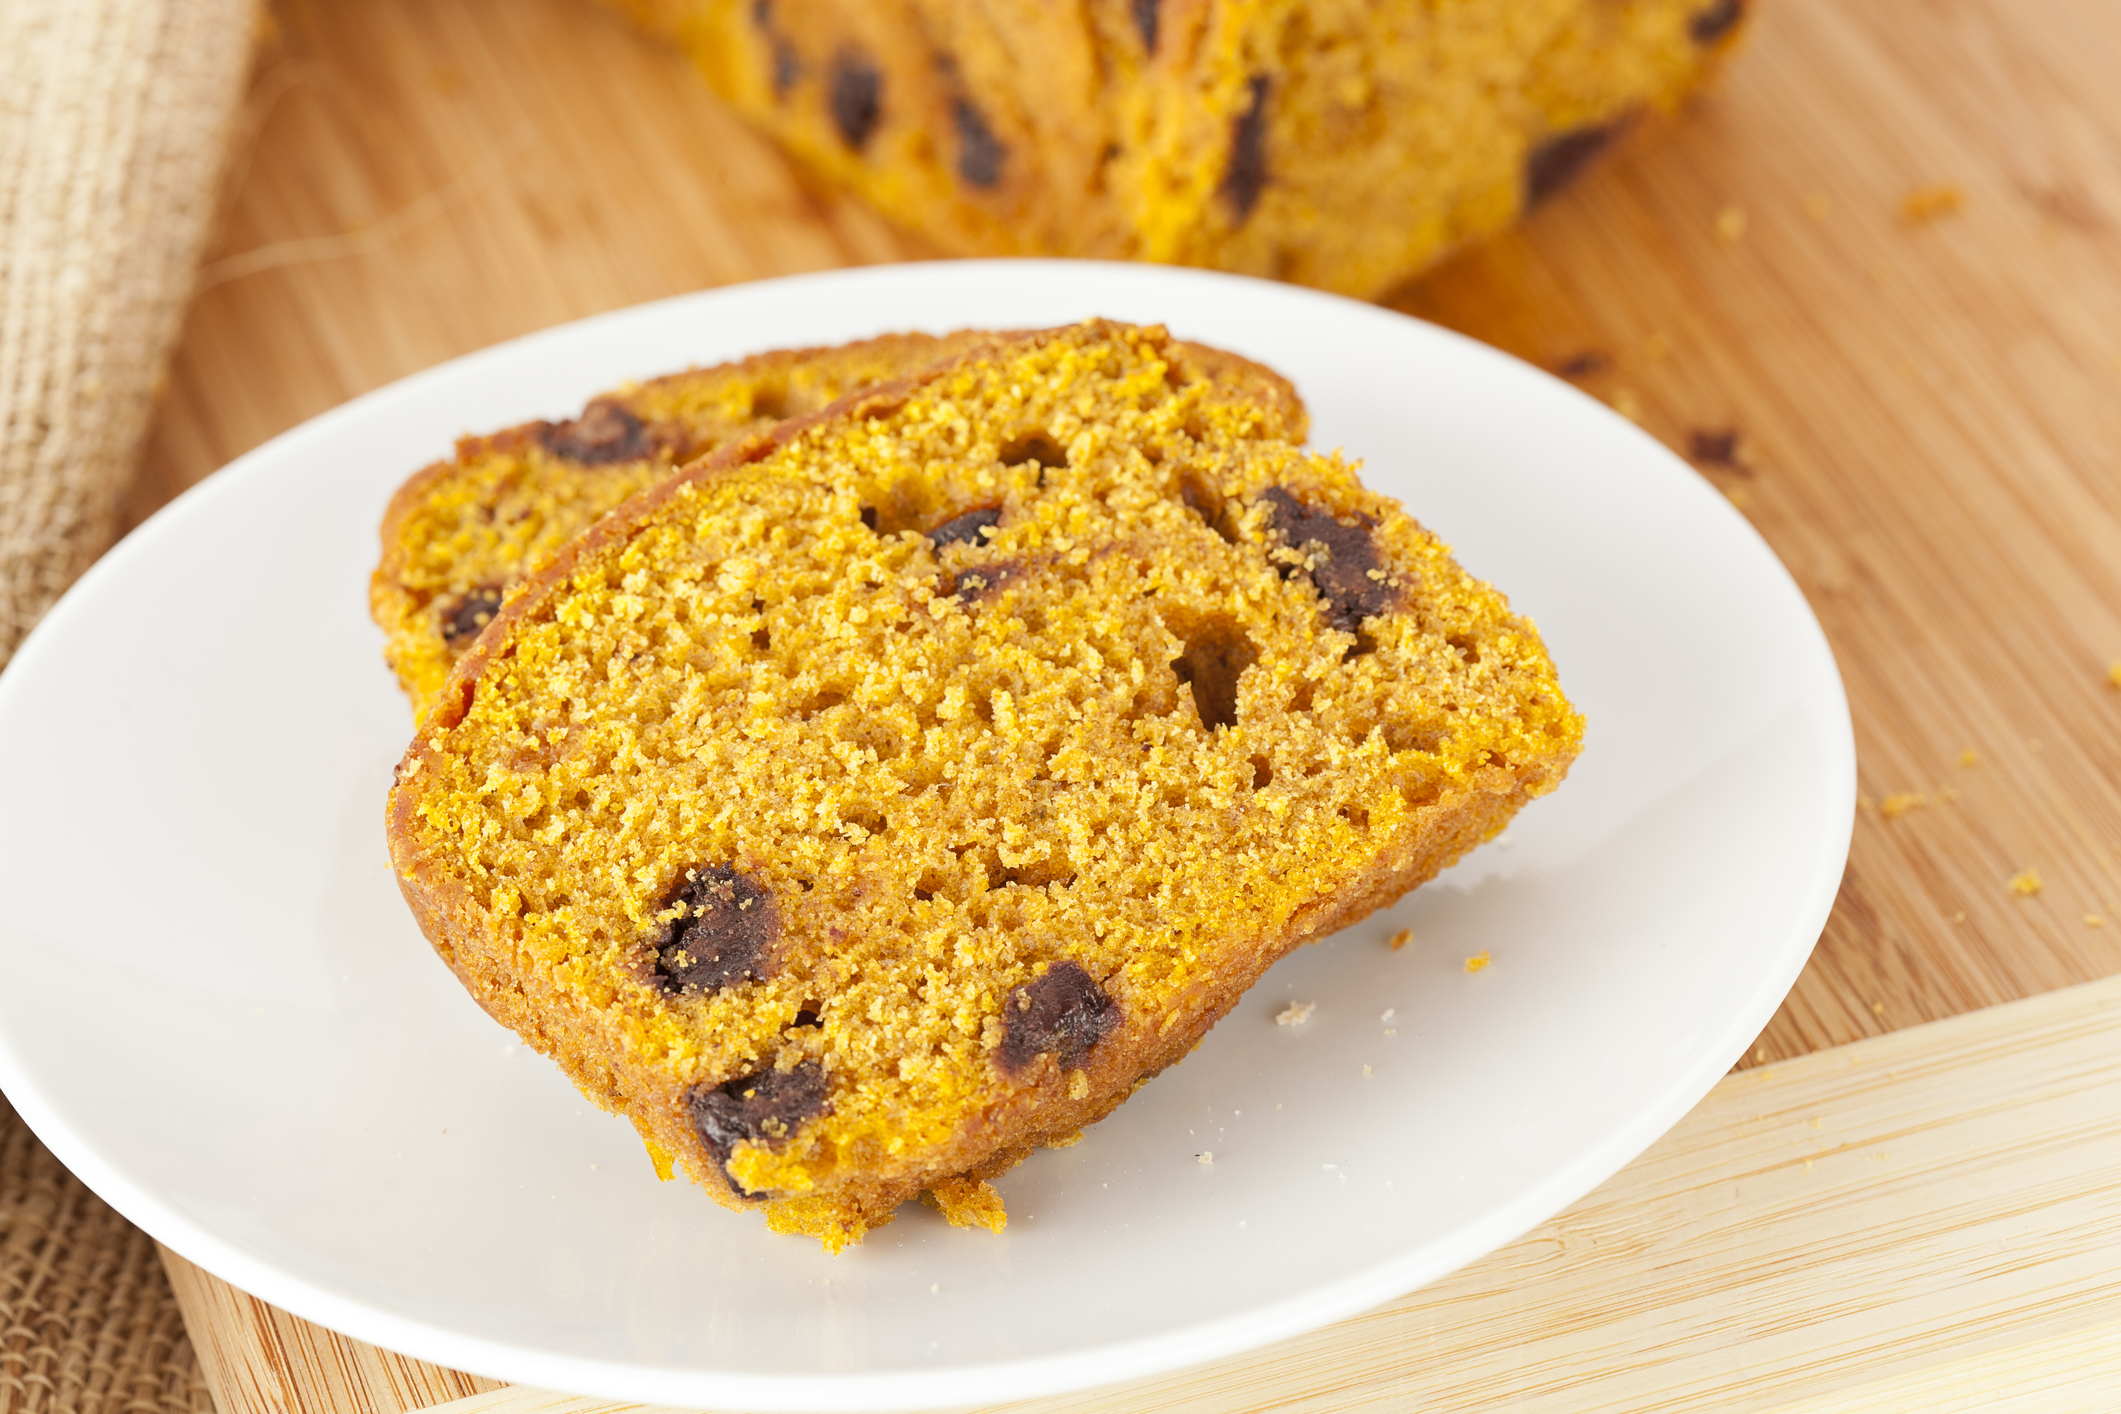 Pumpkin Chocolate Chip bread the healthy way. When I smell this baking in the oven, I know it's fall. Made with healthy fats, and the addition of coconut sugar, it's so much more delicious and nutritious than any bread at a coffee shop